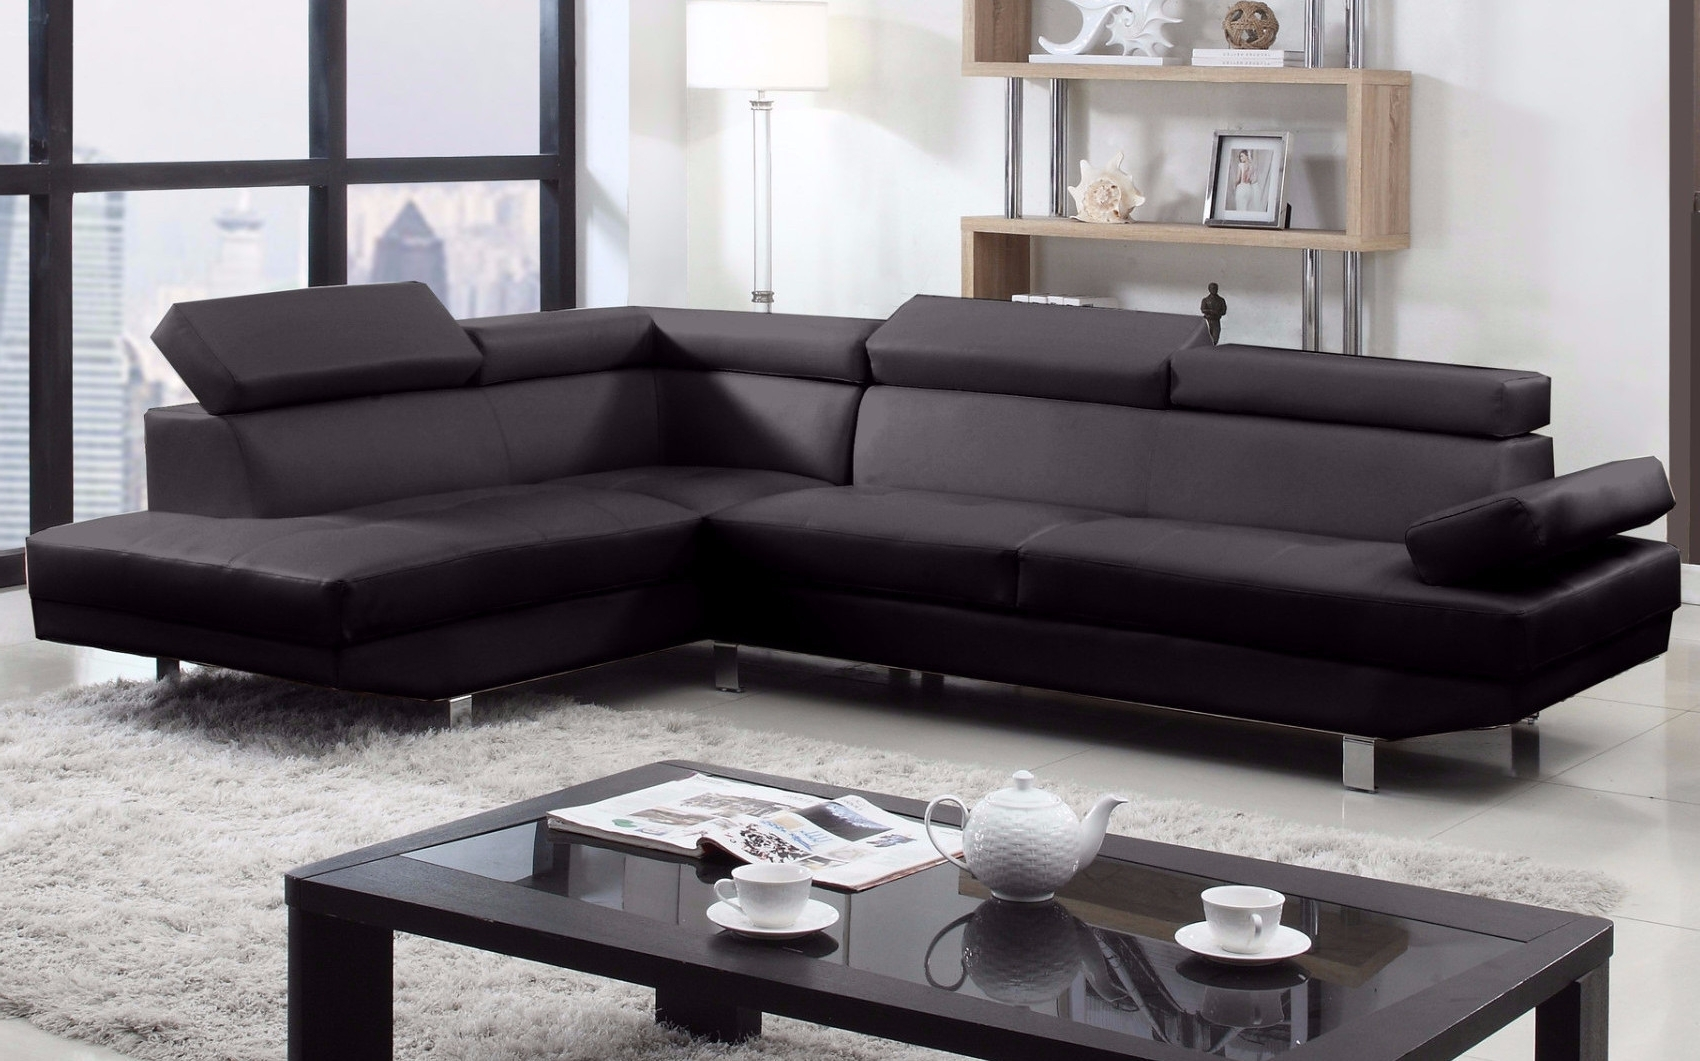 2 Piece Modern Bonded Leather Right Facing Chaise Sectional Sofa with regard to Trendy 2 Seat Sectional Sofas